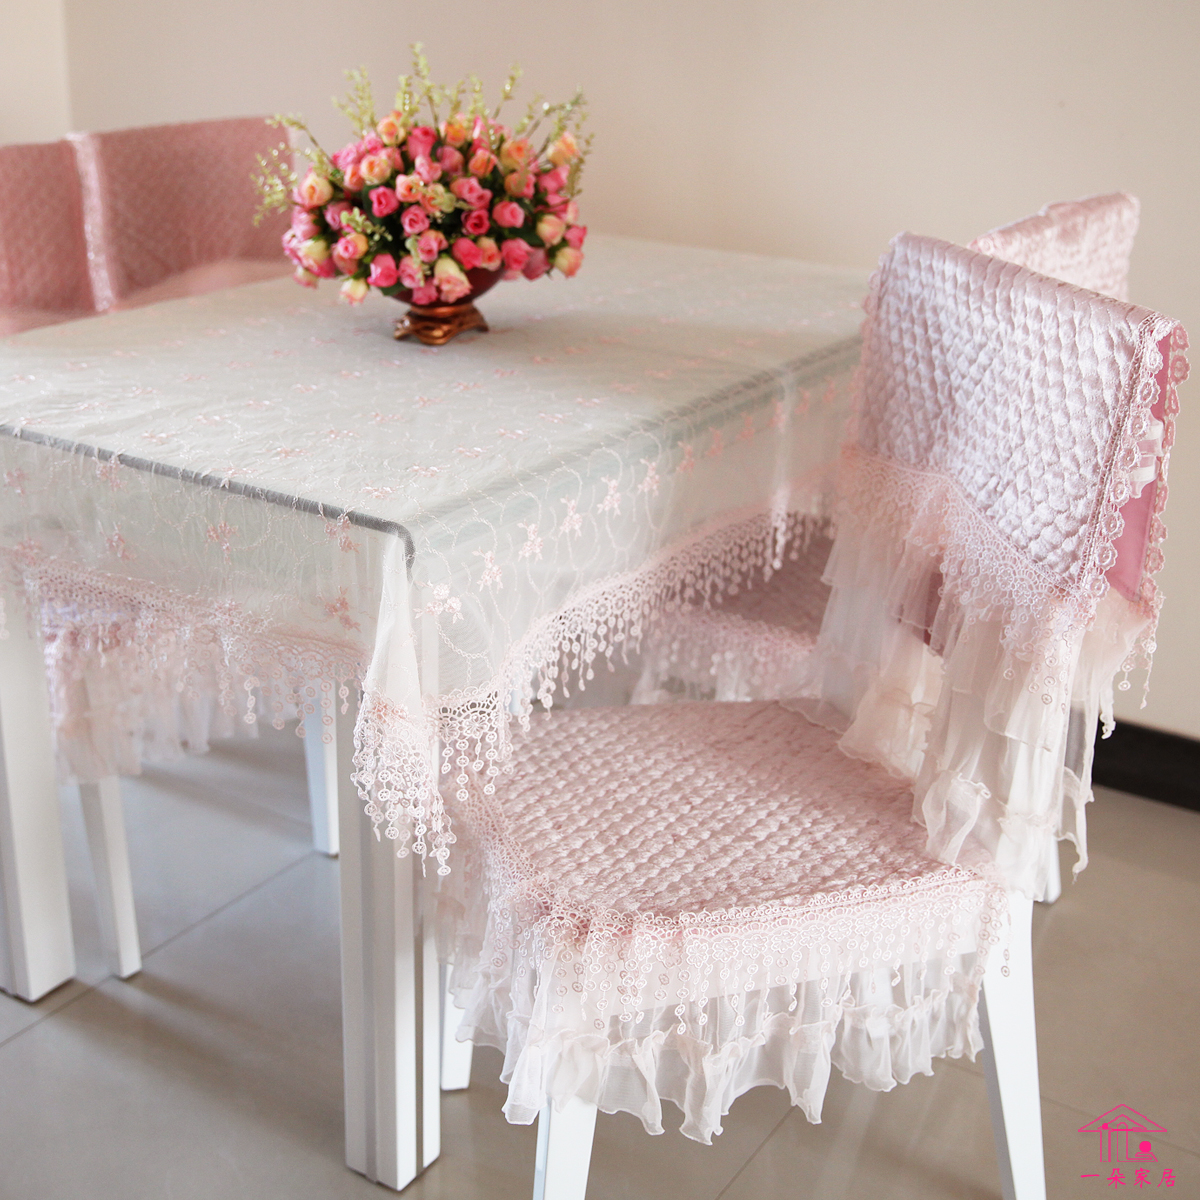 A table cloth lace table cloth cloth fabric table cloth  : A table cloth lace table cloth cloth fabric table cloth square tablecloth dining chair seat cover from www.aliexpress.com size 1200 x 1200 jpeg 1127kB